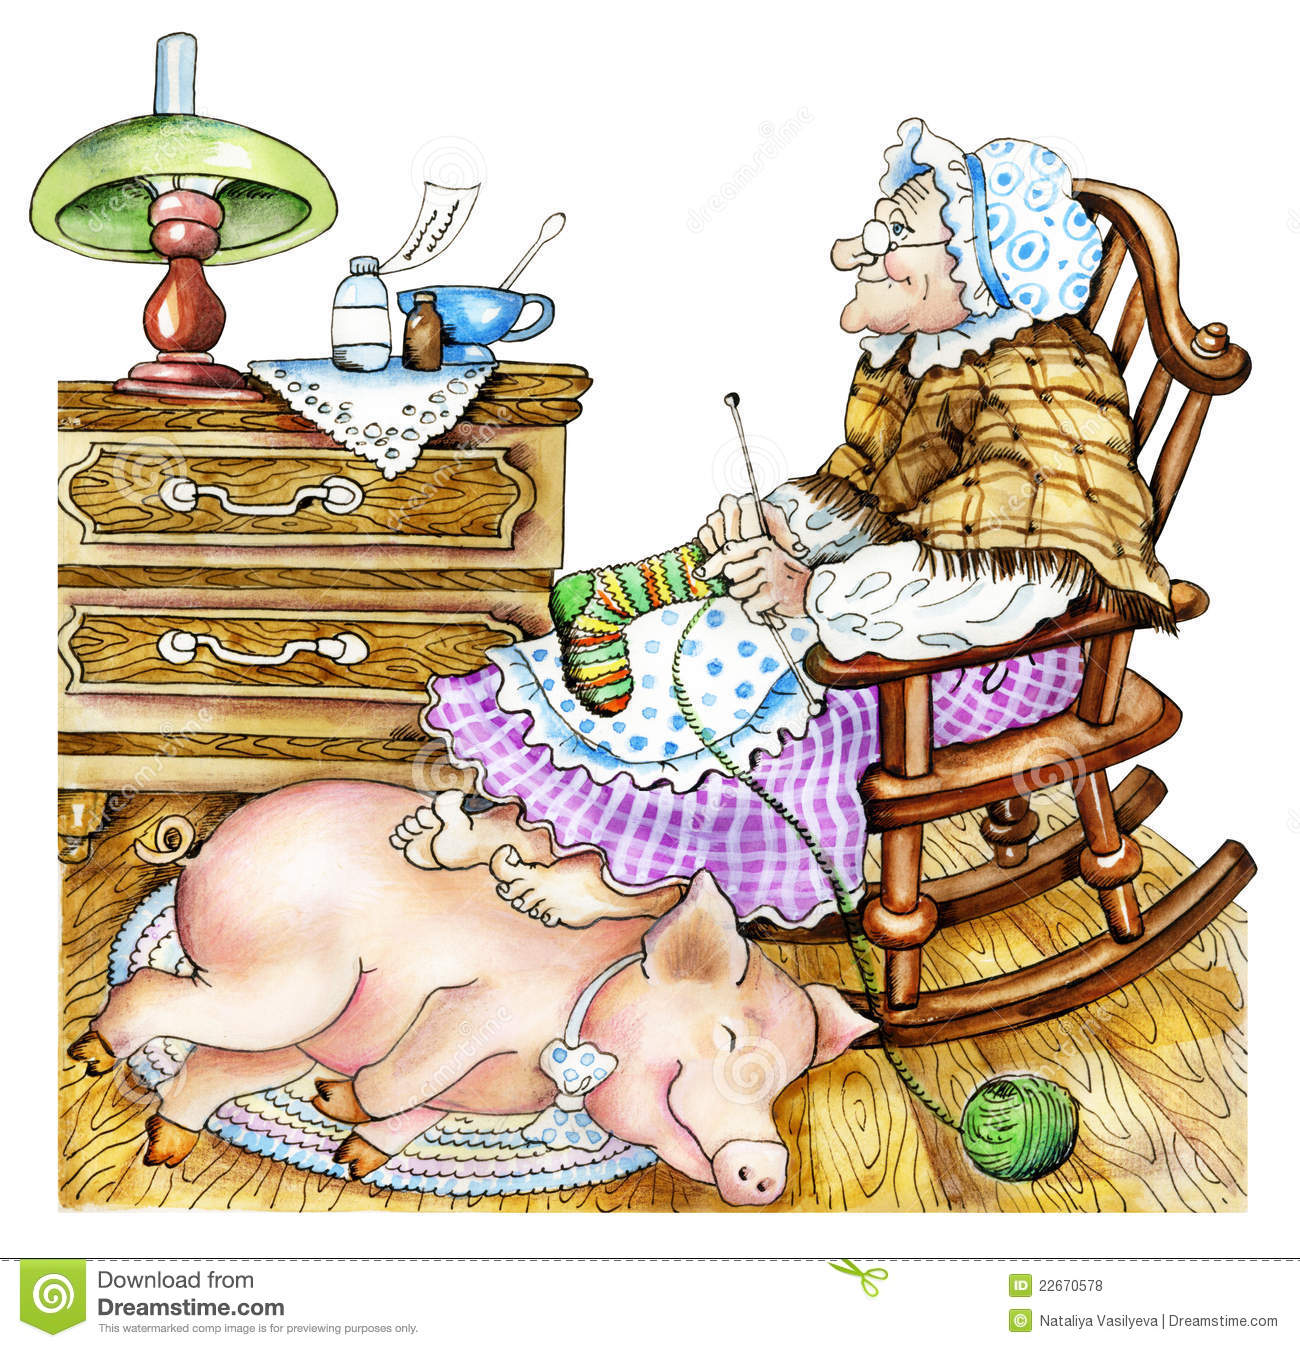 Granny with a pig